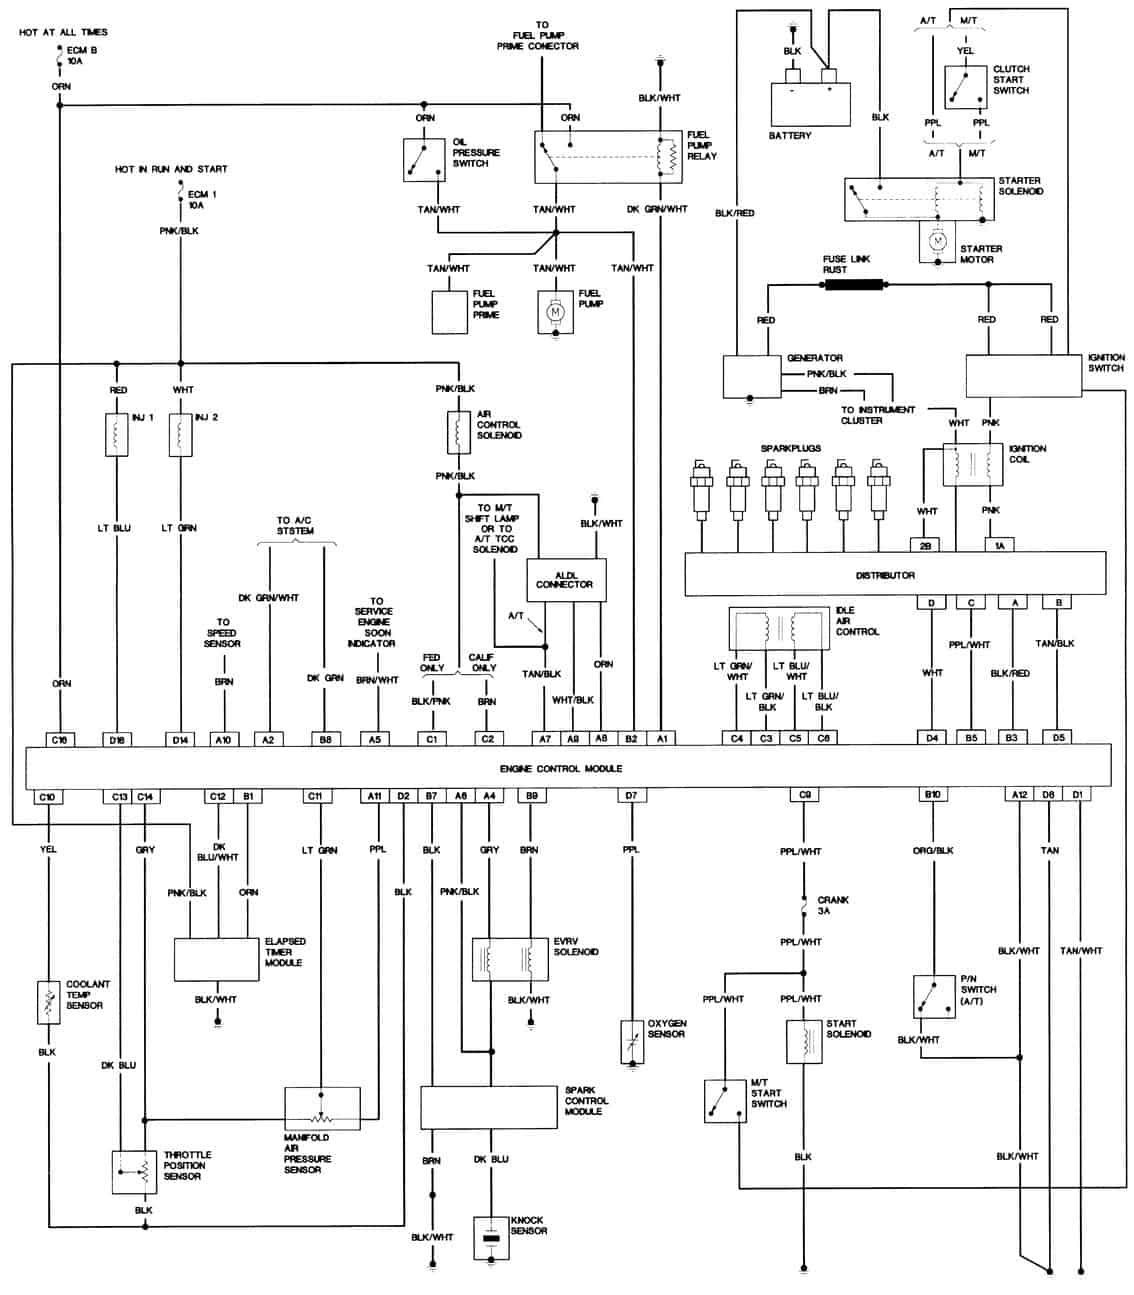 [TVPR_3874]  1988 Blazer Wiring Schematic Diagrams Bmw Fuse Box Layout -  seginim.art-40.autoprestige-utilitaire.fr | Free Download Gsr Series Wiring Diagram |  | Wiring Diagram and Schematics